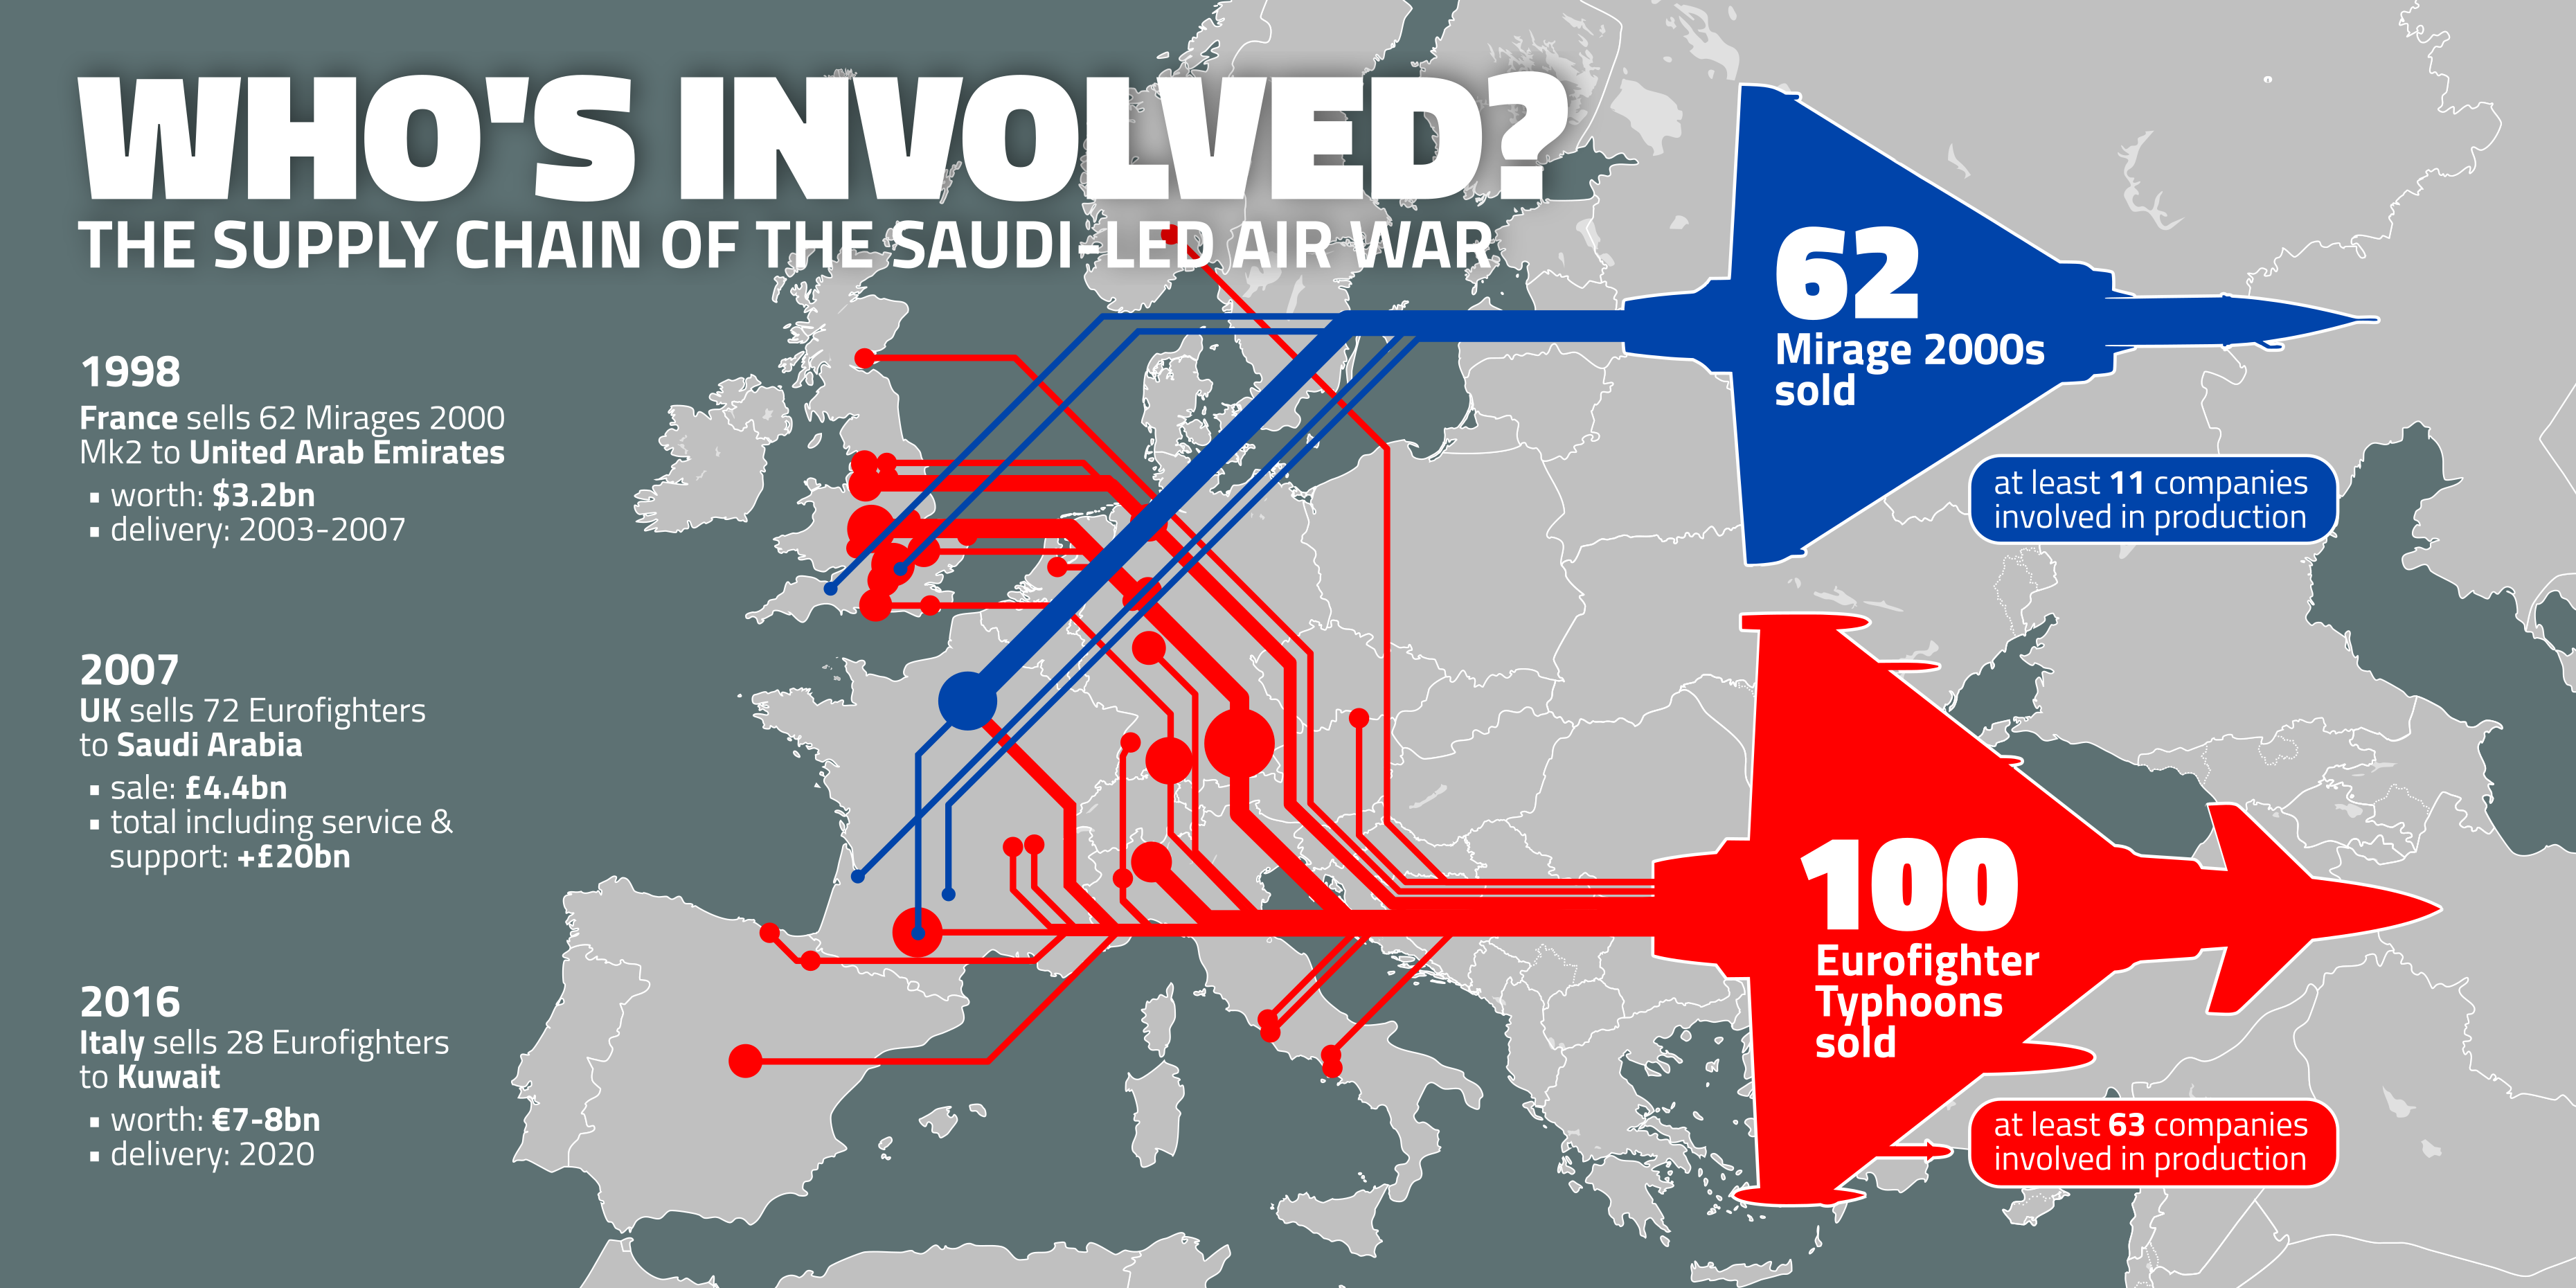 Supply chain of the Saudi-led air war